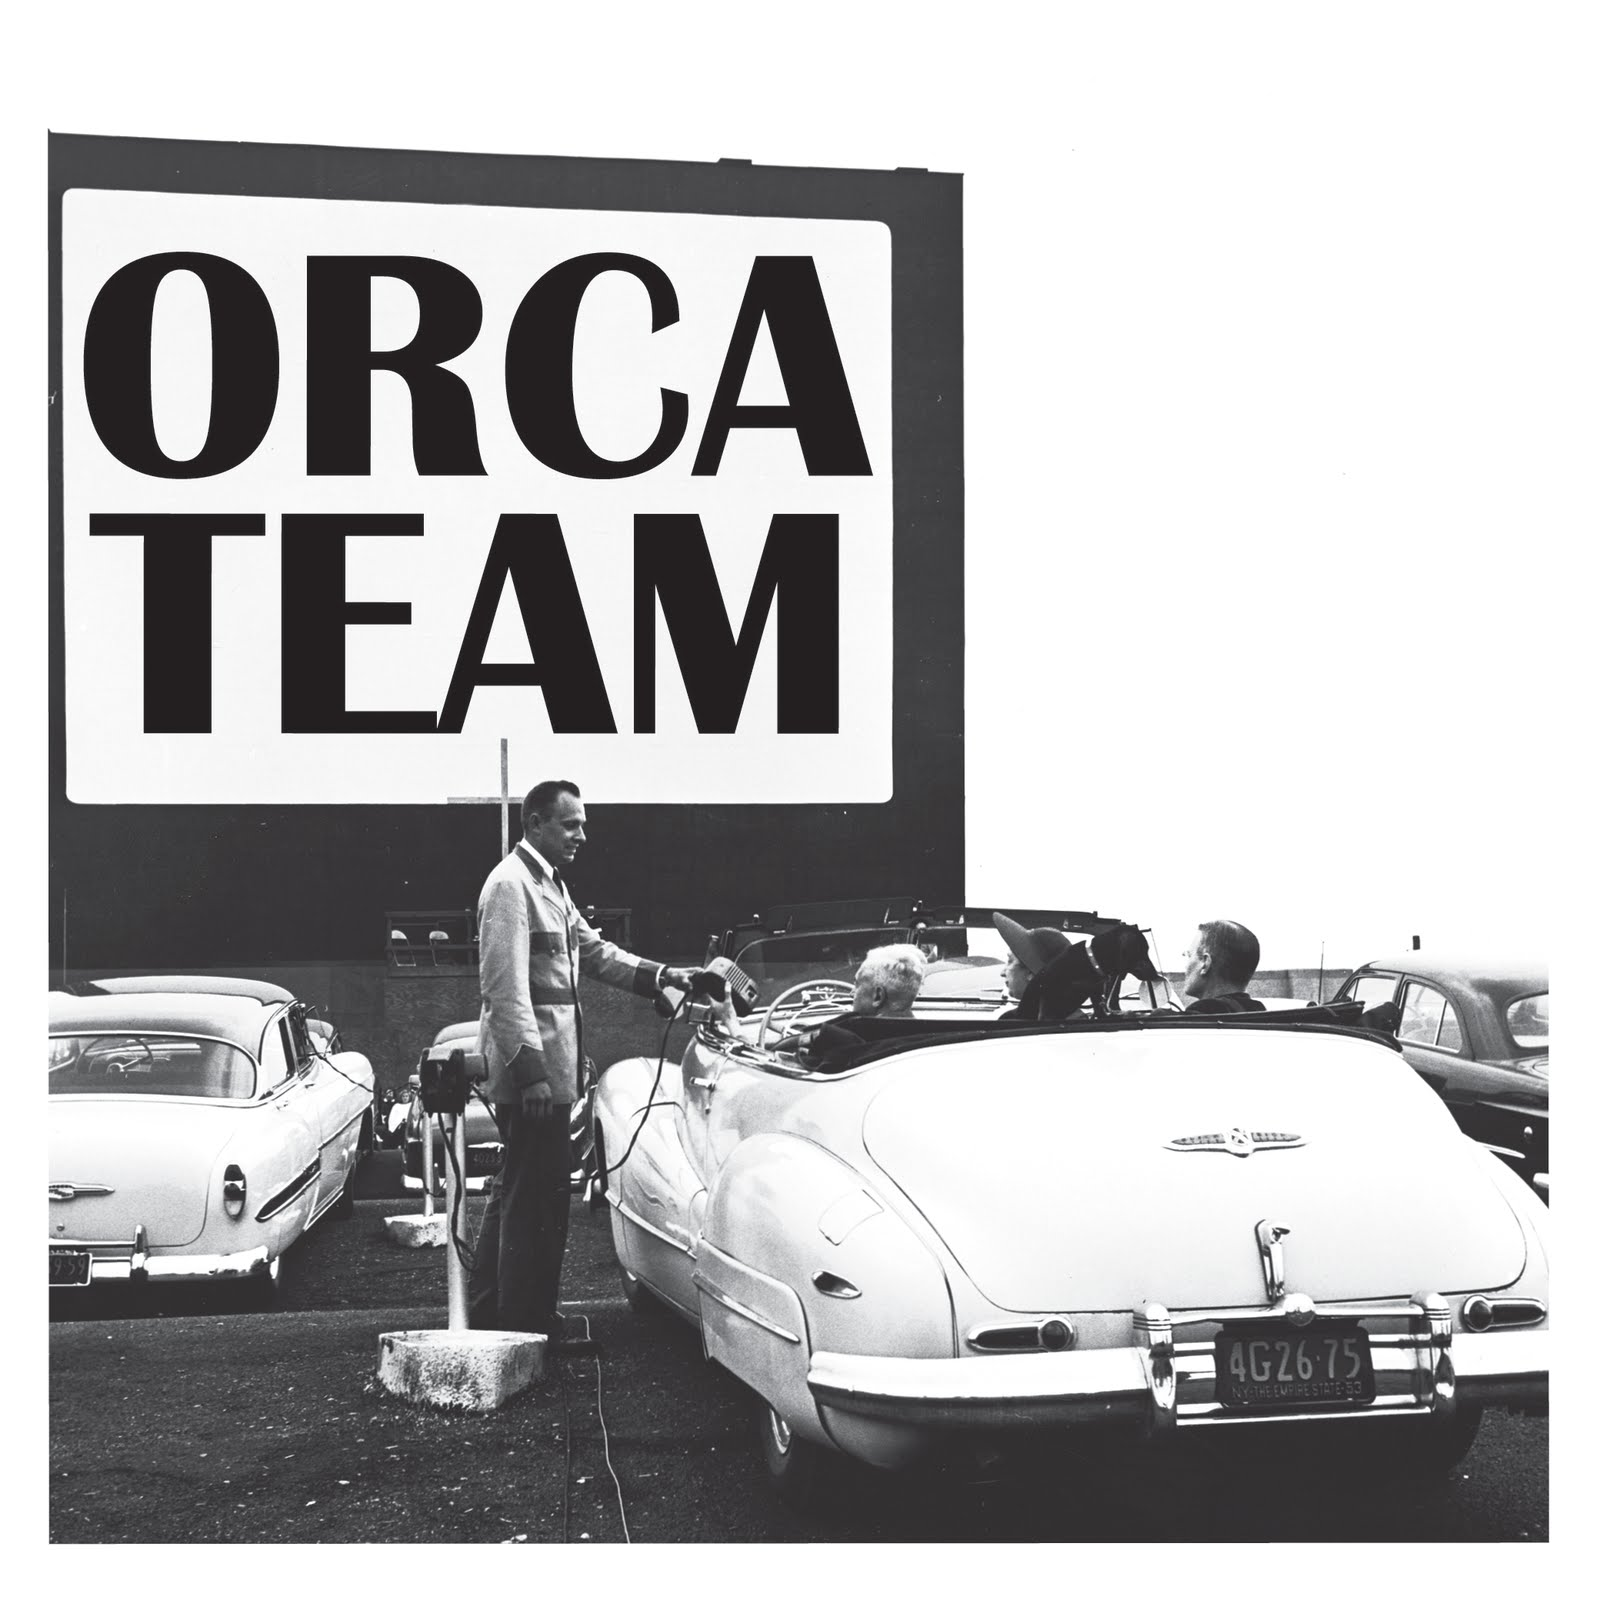 Orca Team: Take My Hand